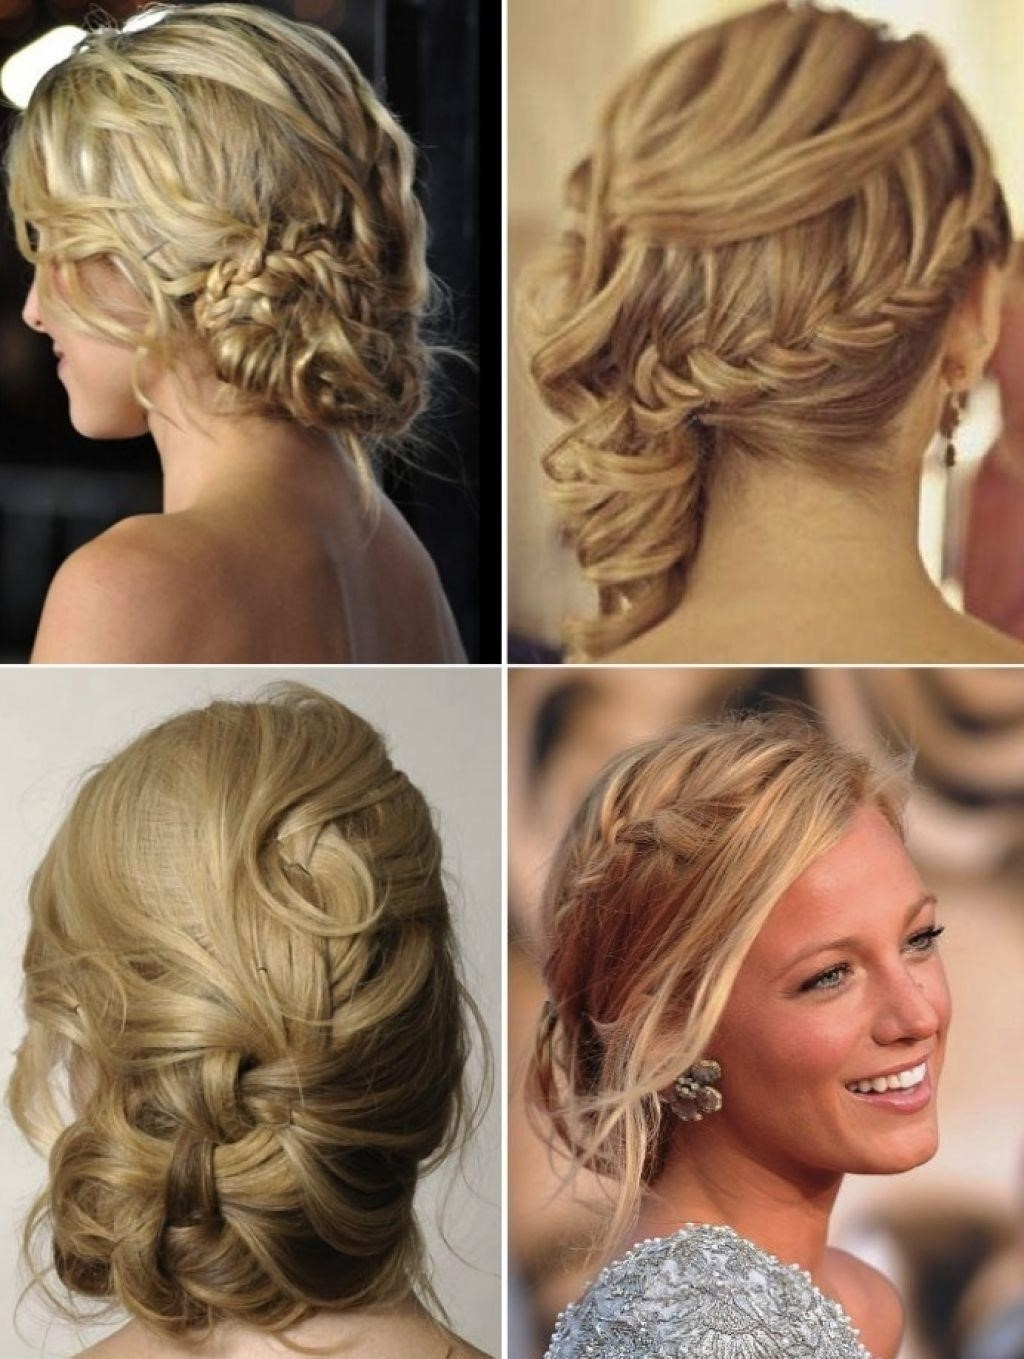 Updo Hairstyles For A Wedding Wedding Hairstyles Side Bun With Braid Pertaining To Side Updo Hairstyles (Gallery 7 of 15)